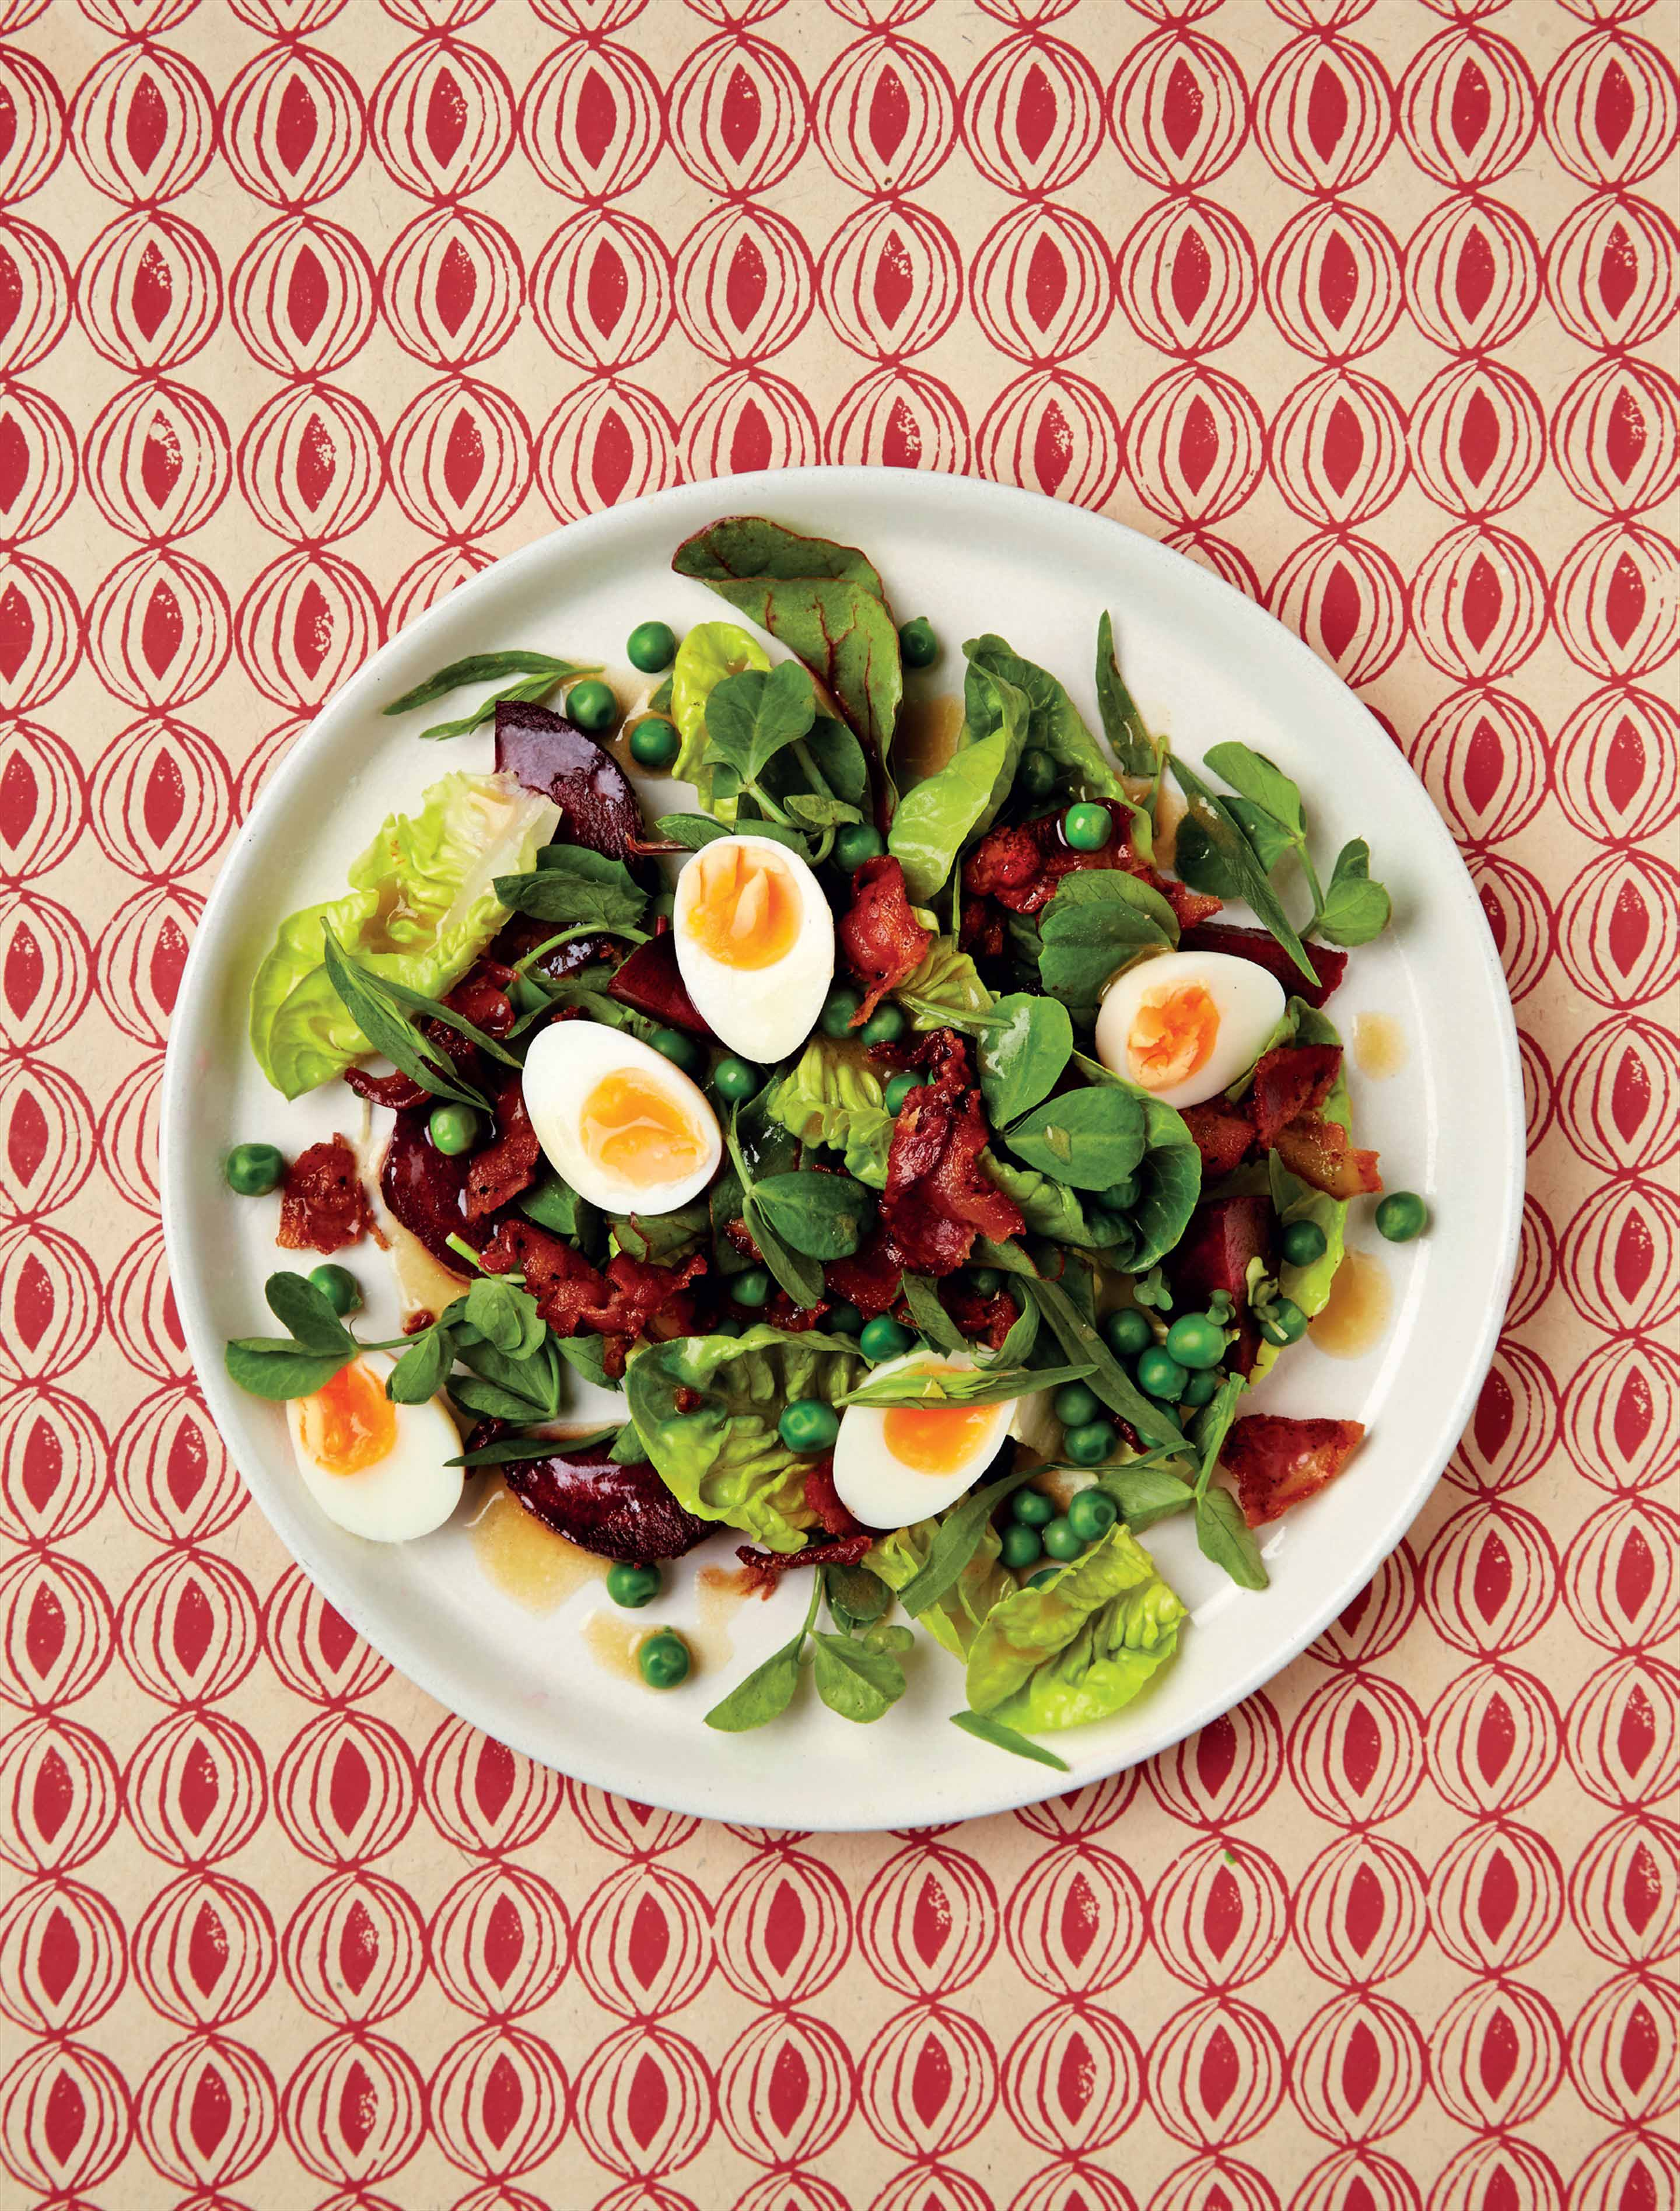 Bacon salad with beetroot & quail eggs